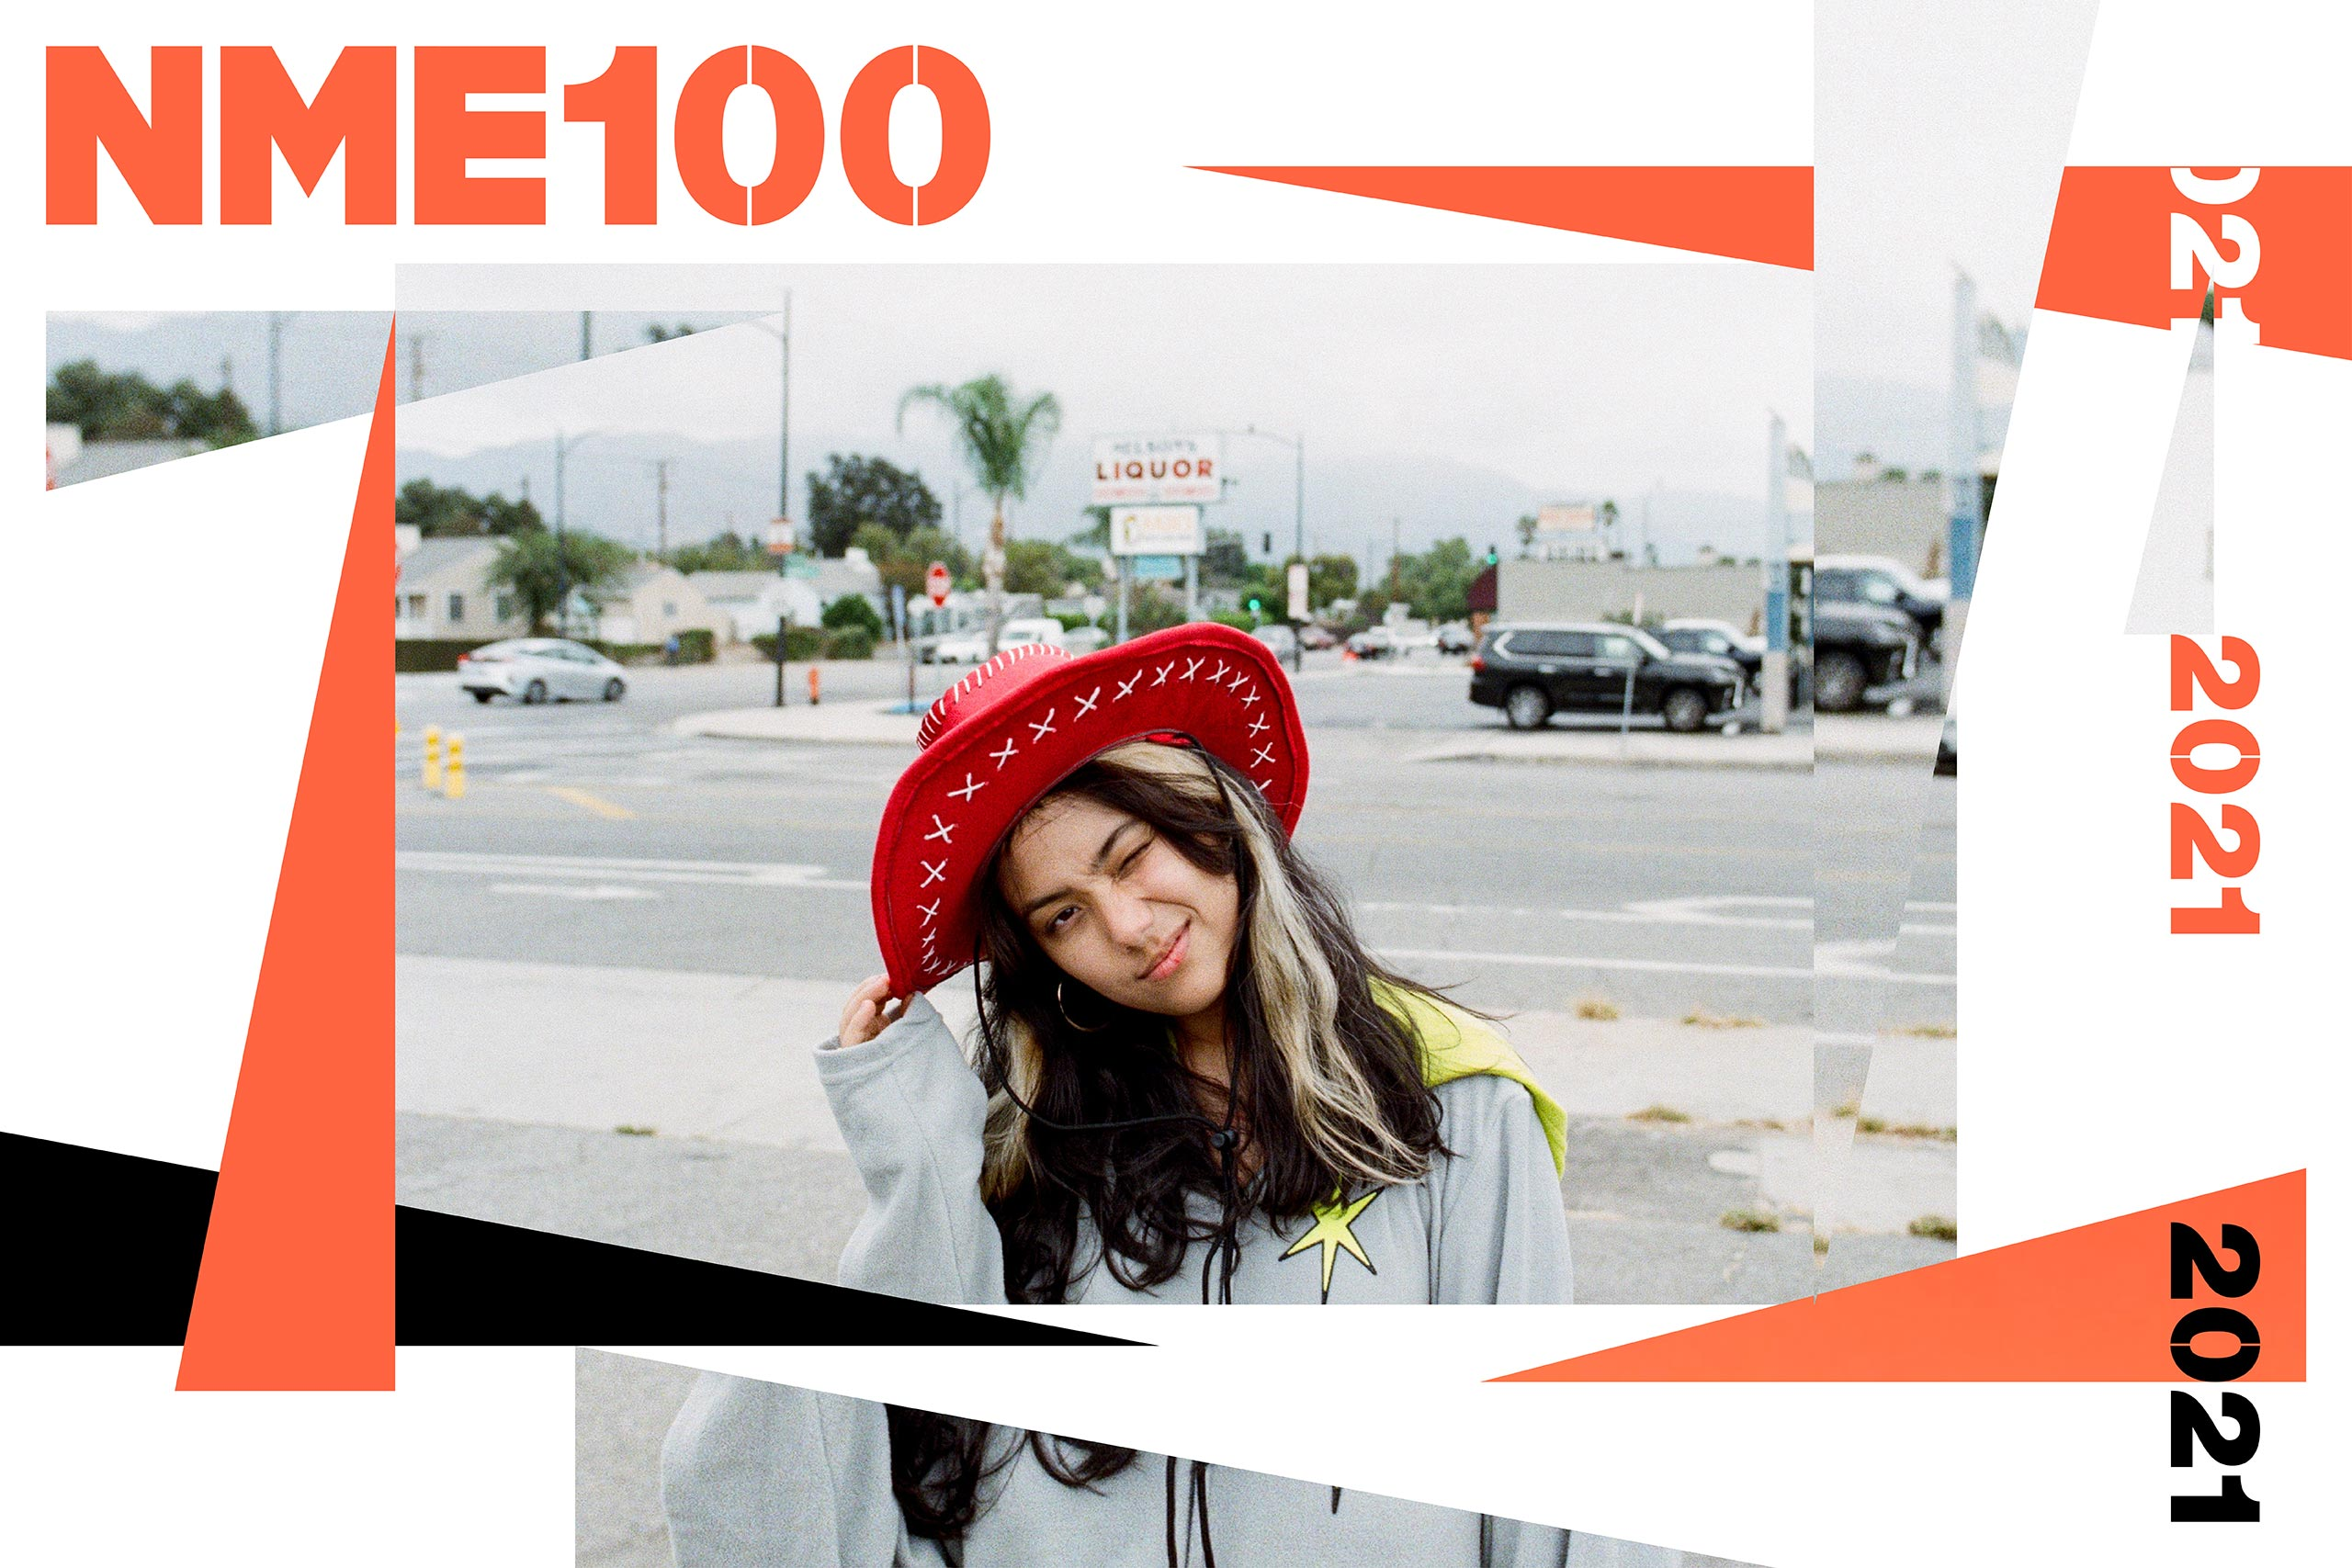 NME 100 spill tab